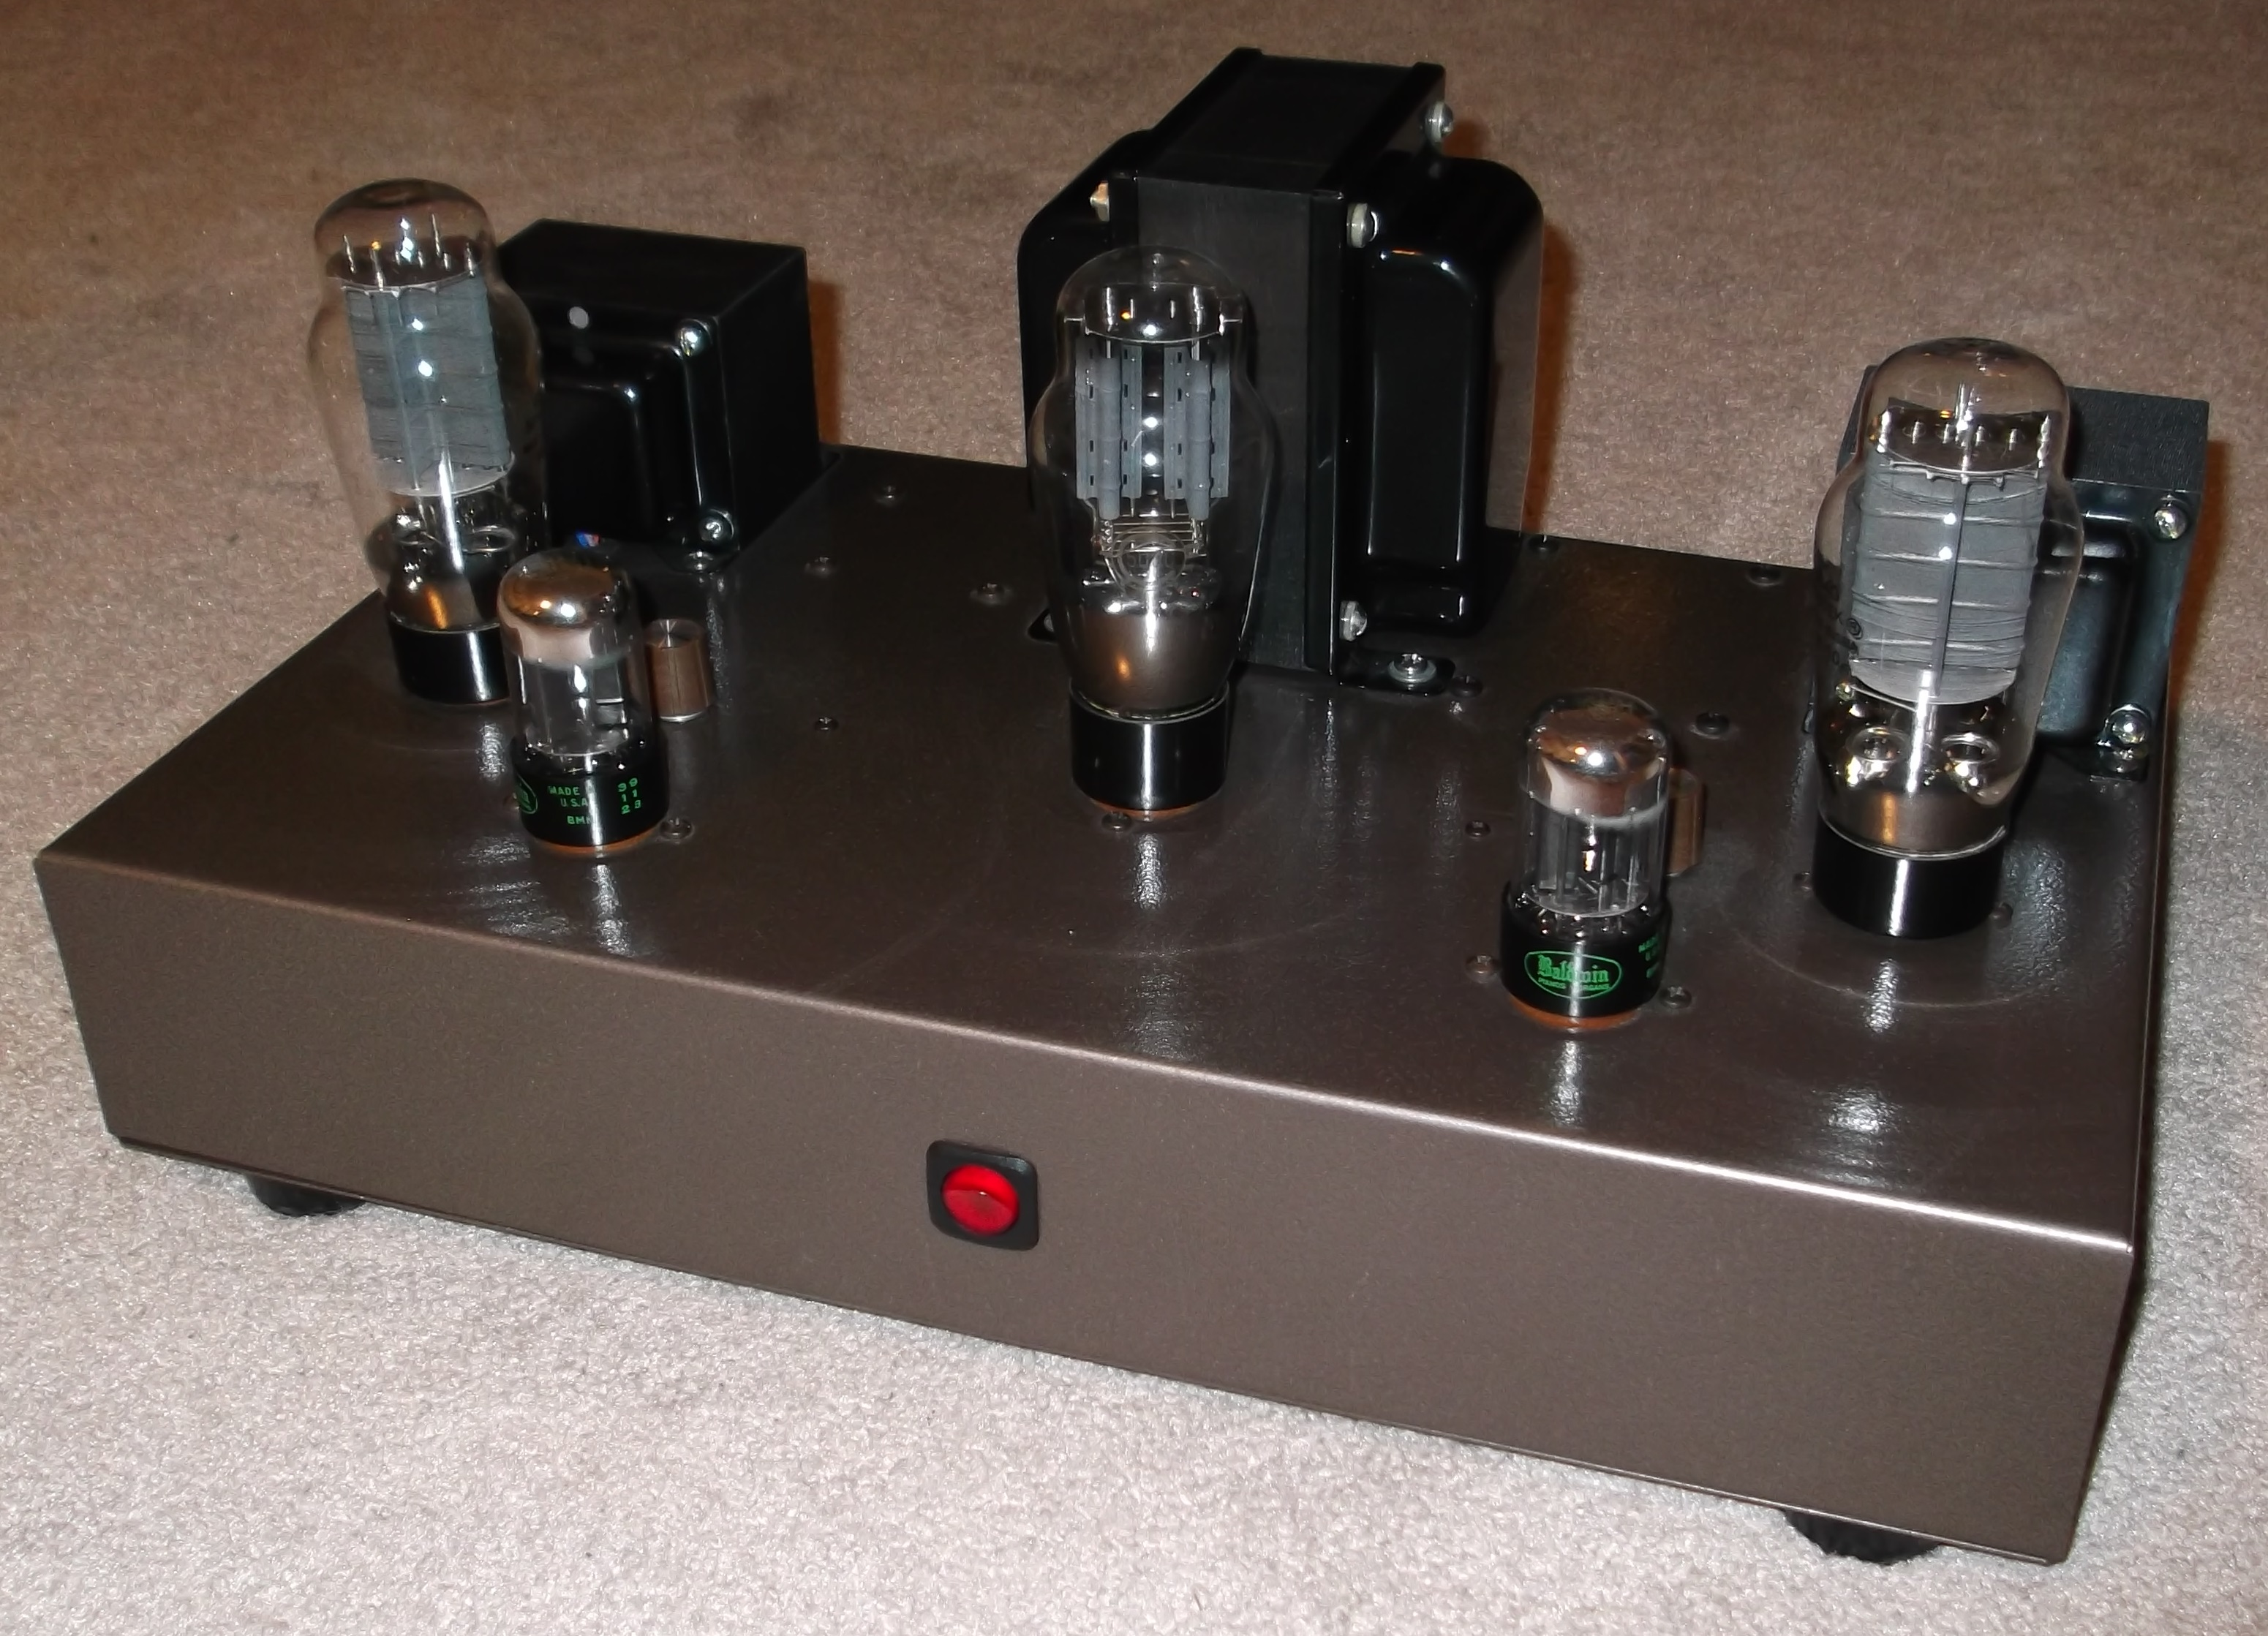 Tm s as well Single Ended 6b4g  lifier likewise Diytube Getsetgo Single Ended  lifier also Single Ended 6b4g  lifier further 87637. on transcendar transformer output audio